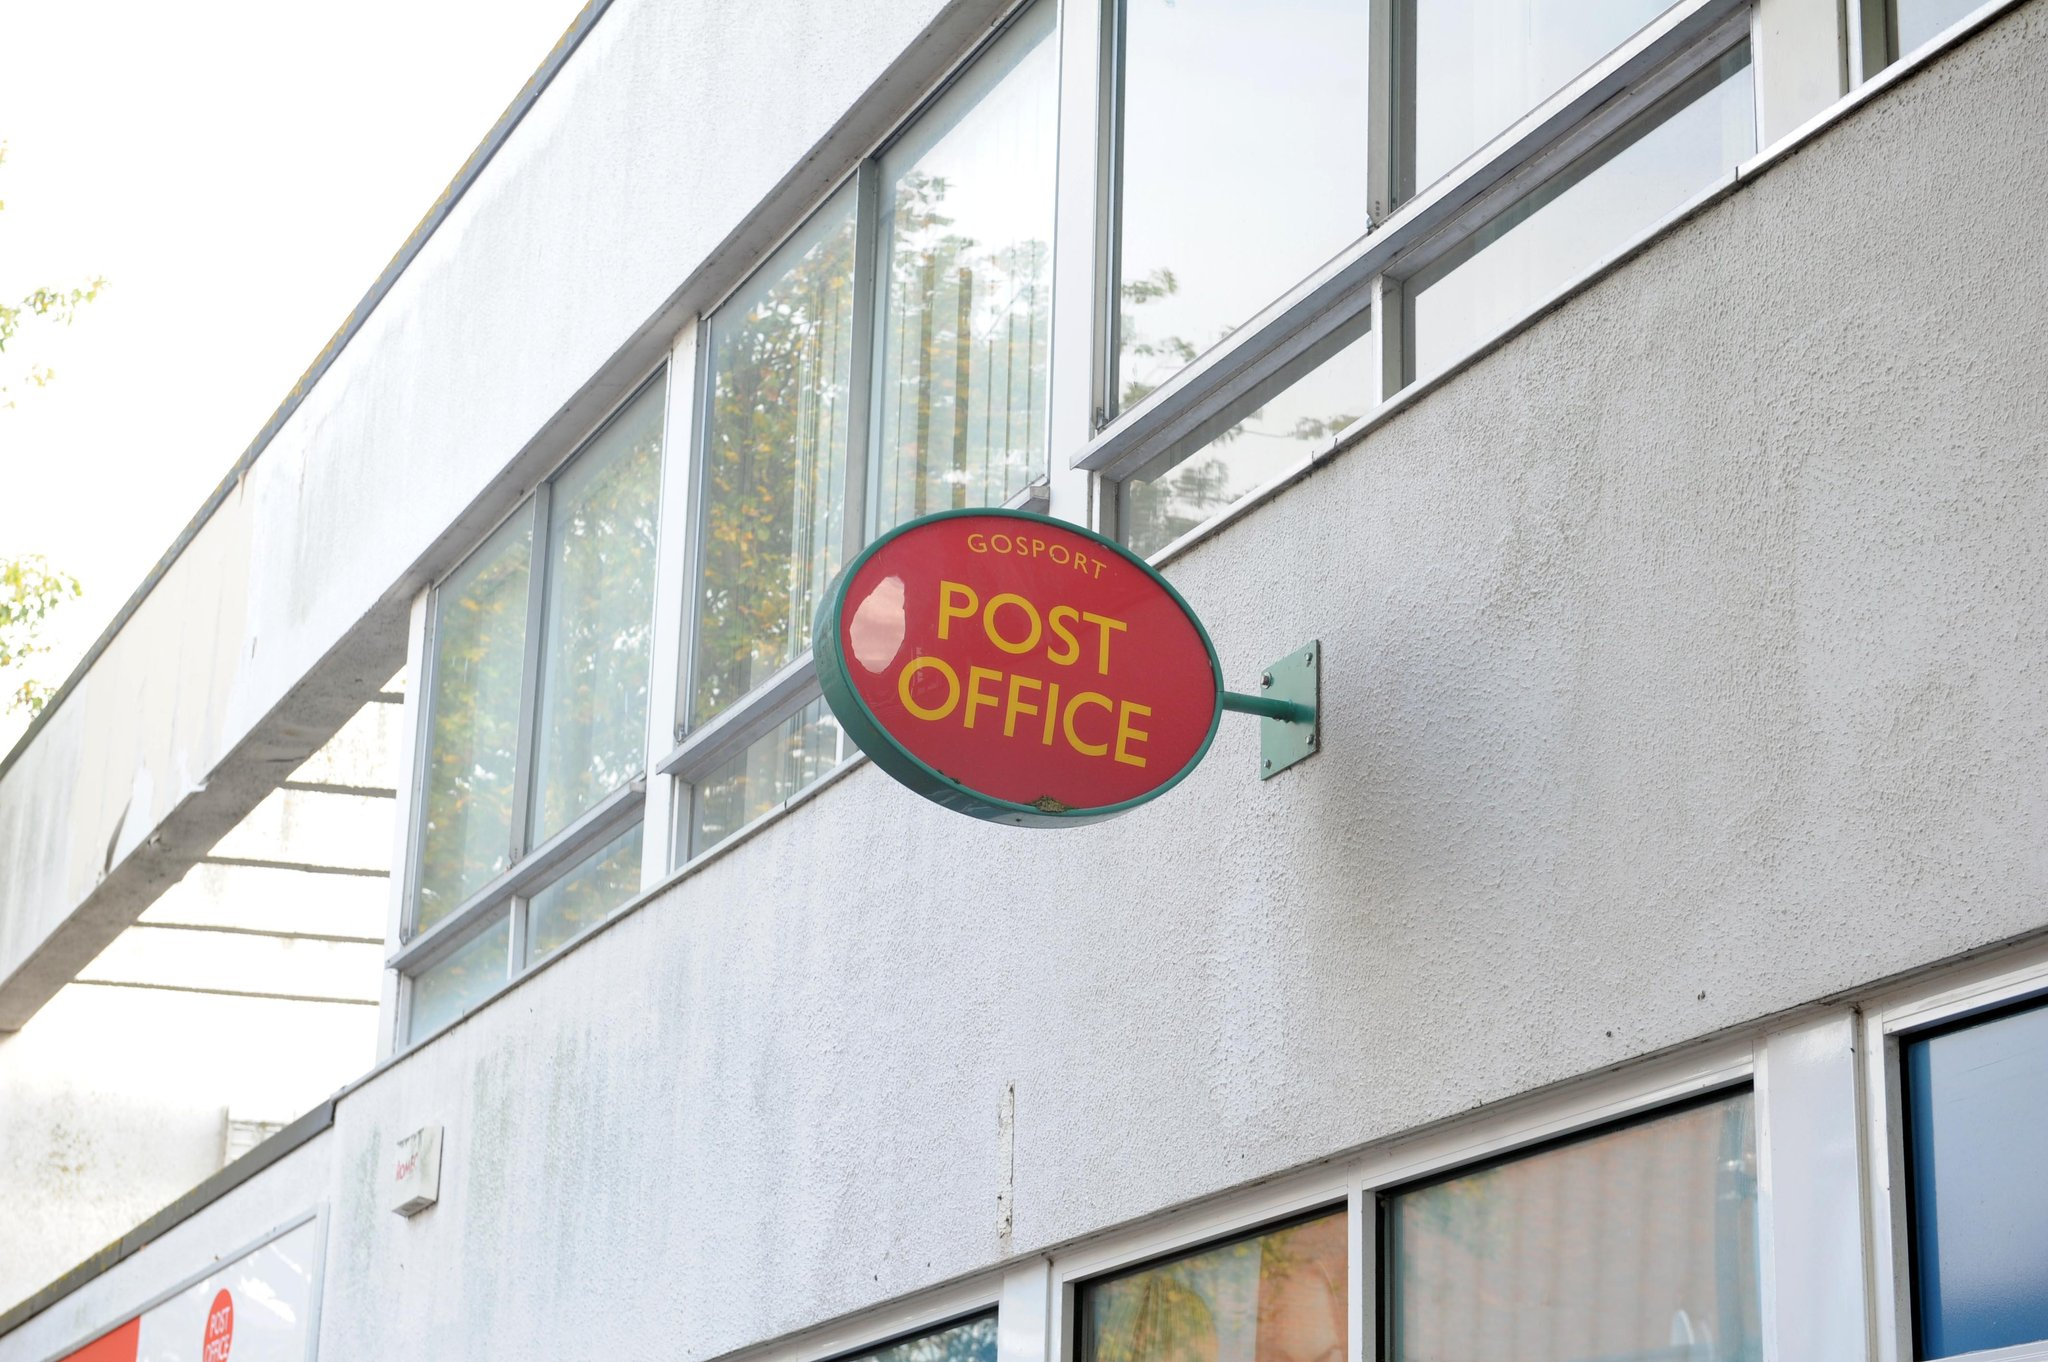 Plans Confirmed For Gosport Post Office To Move To New Location Next Year The News